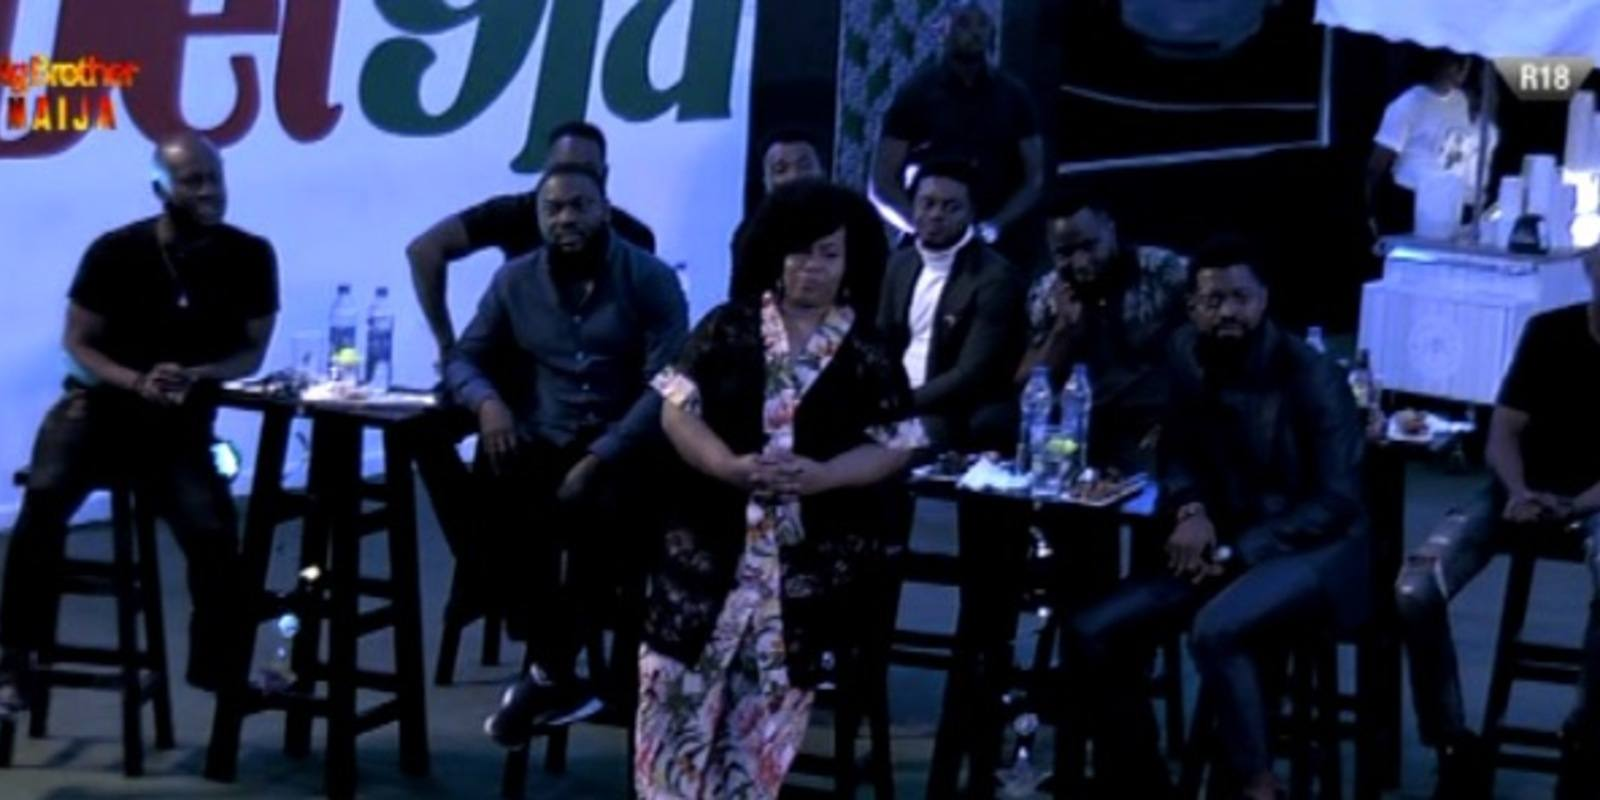 Chigul, Basketmouth, Buchi, and others visit housemates (video)